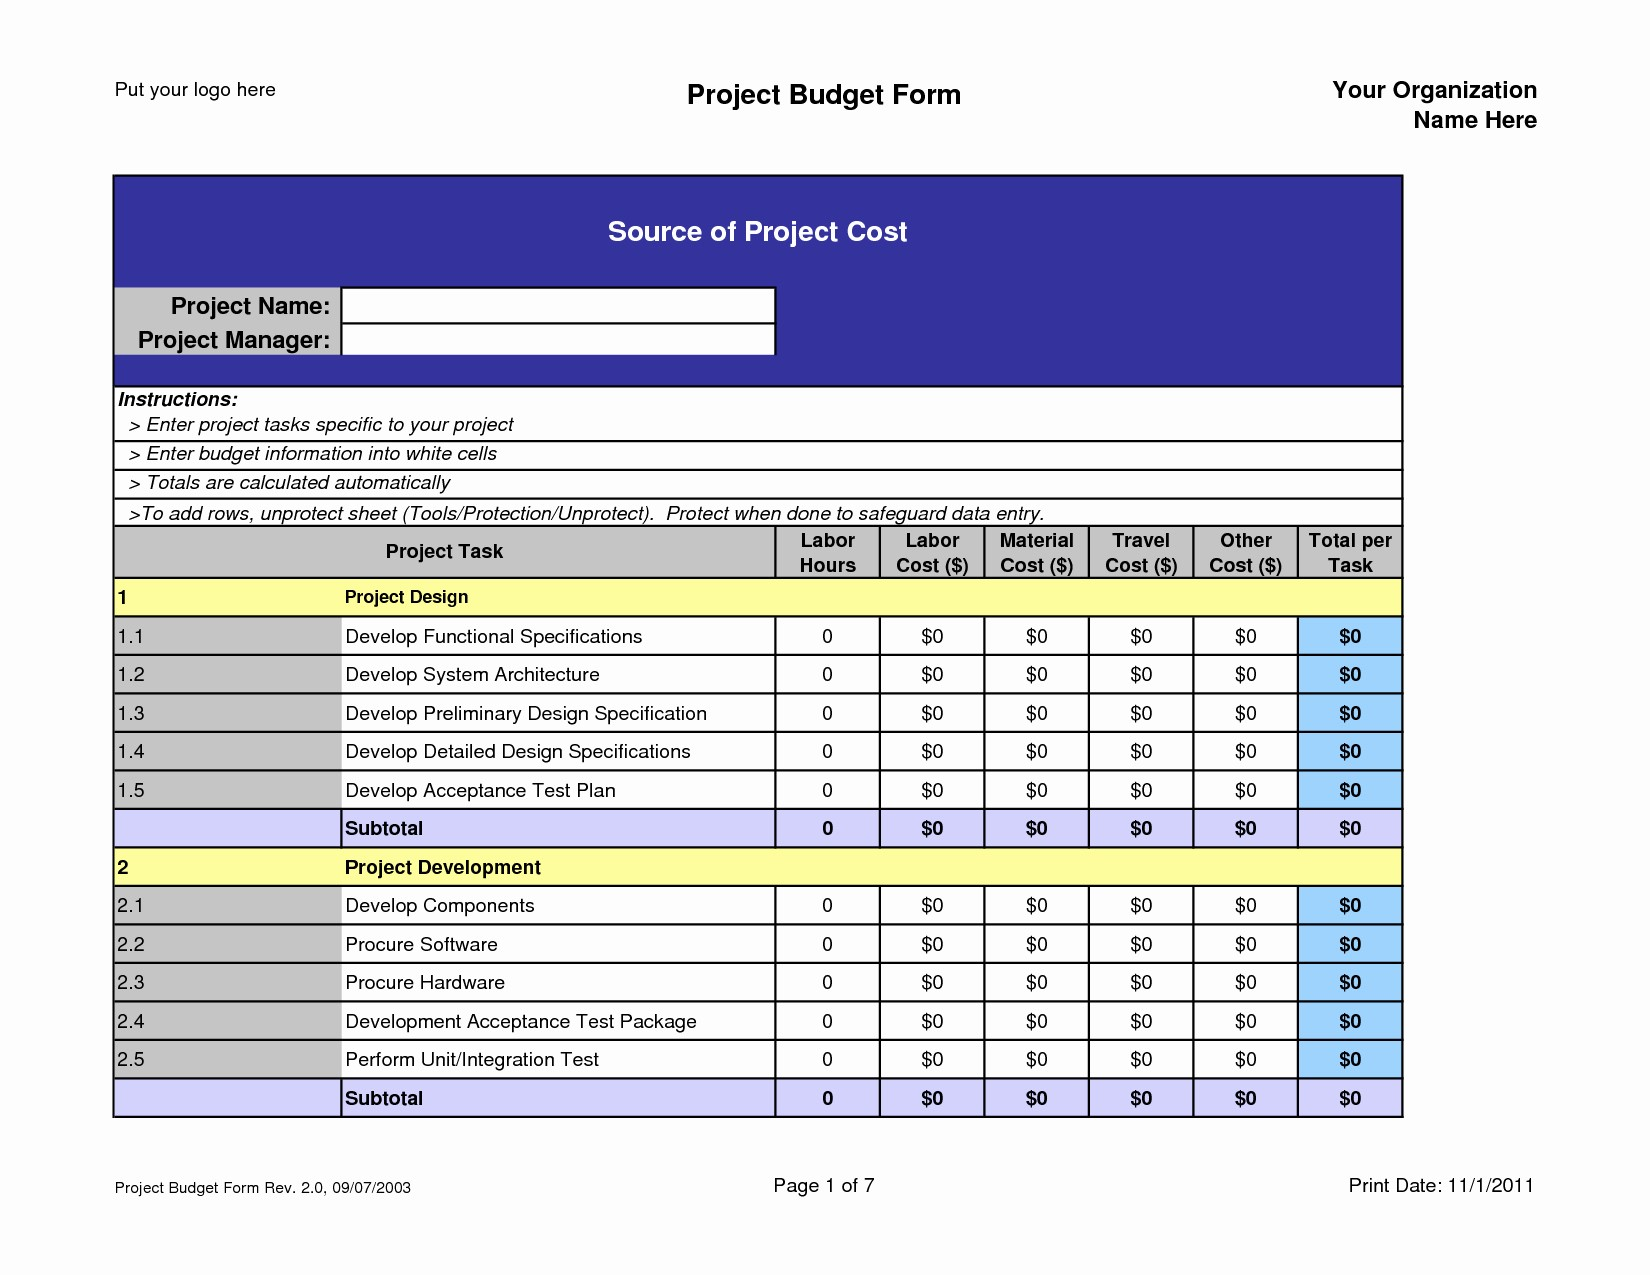 Project Management Templates In Excel Fresh Project Management Templates for Excel Free Download